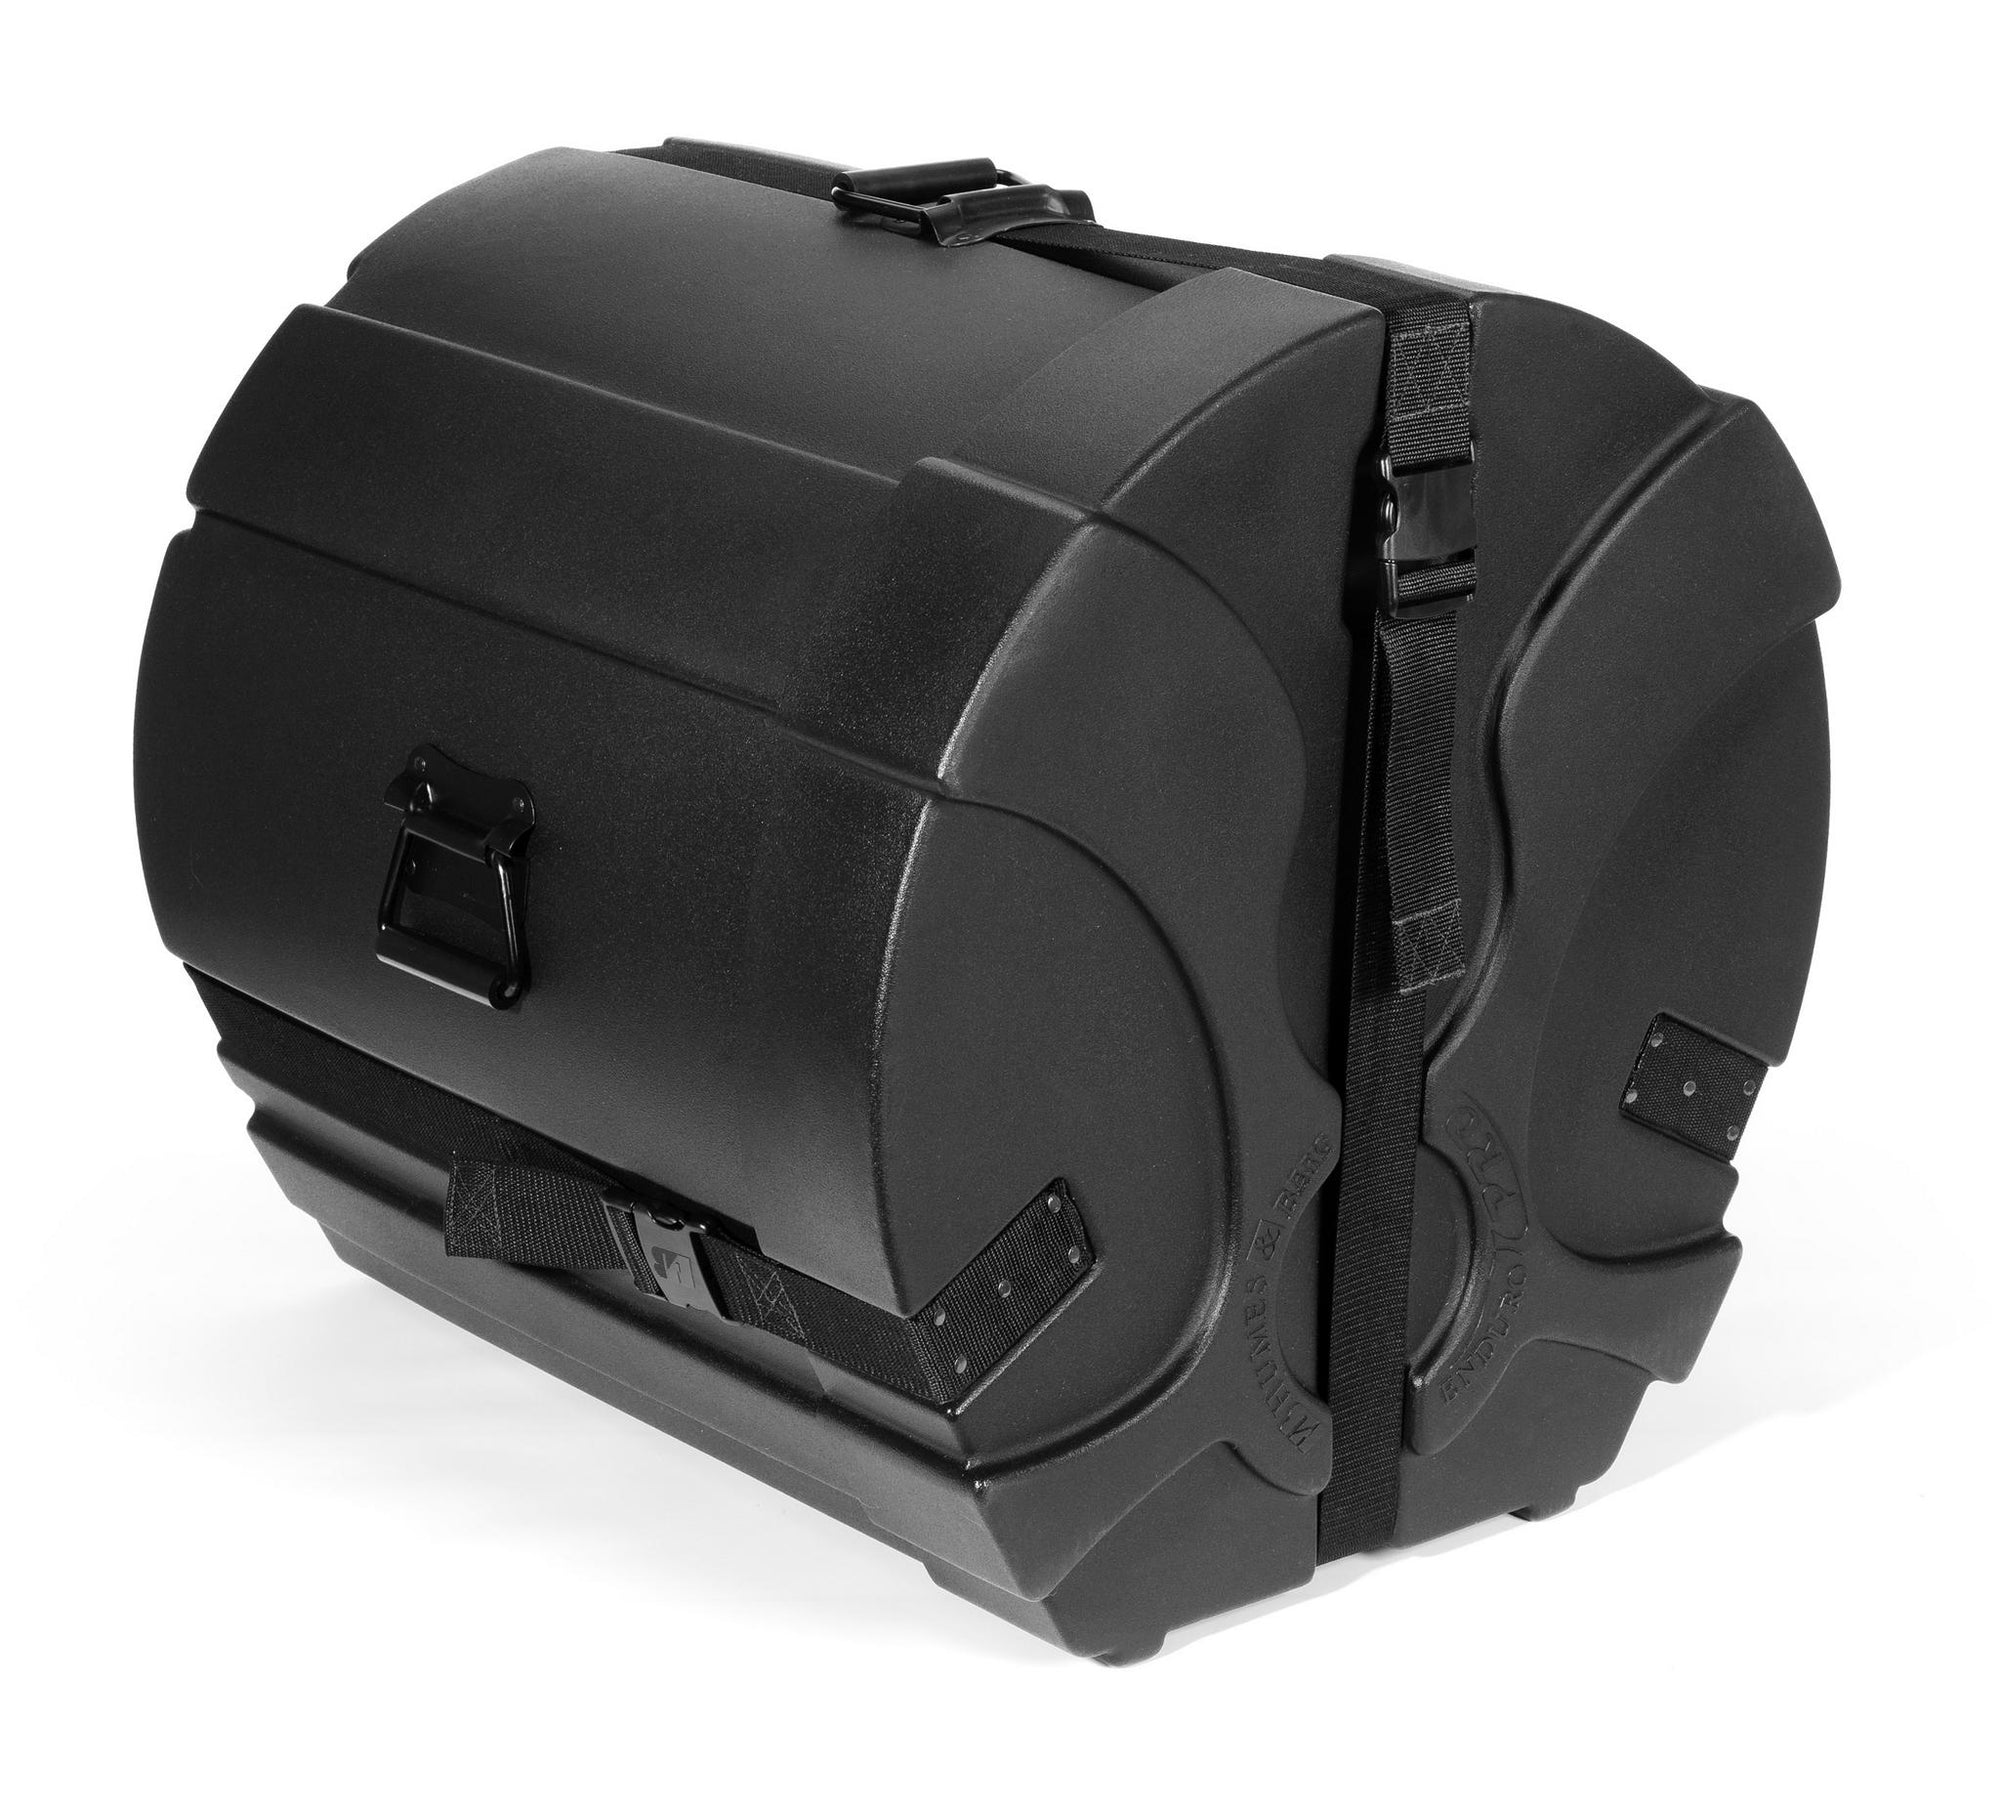 H&B  Enduro Pro 16 x 24 Inches Bass Drum Case